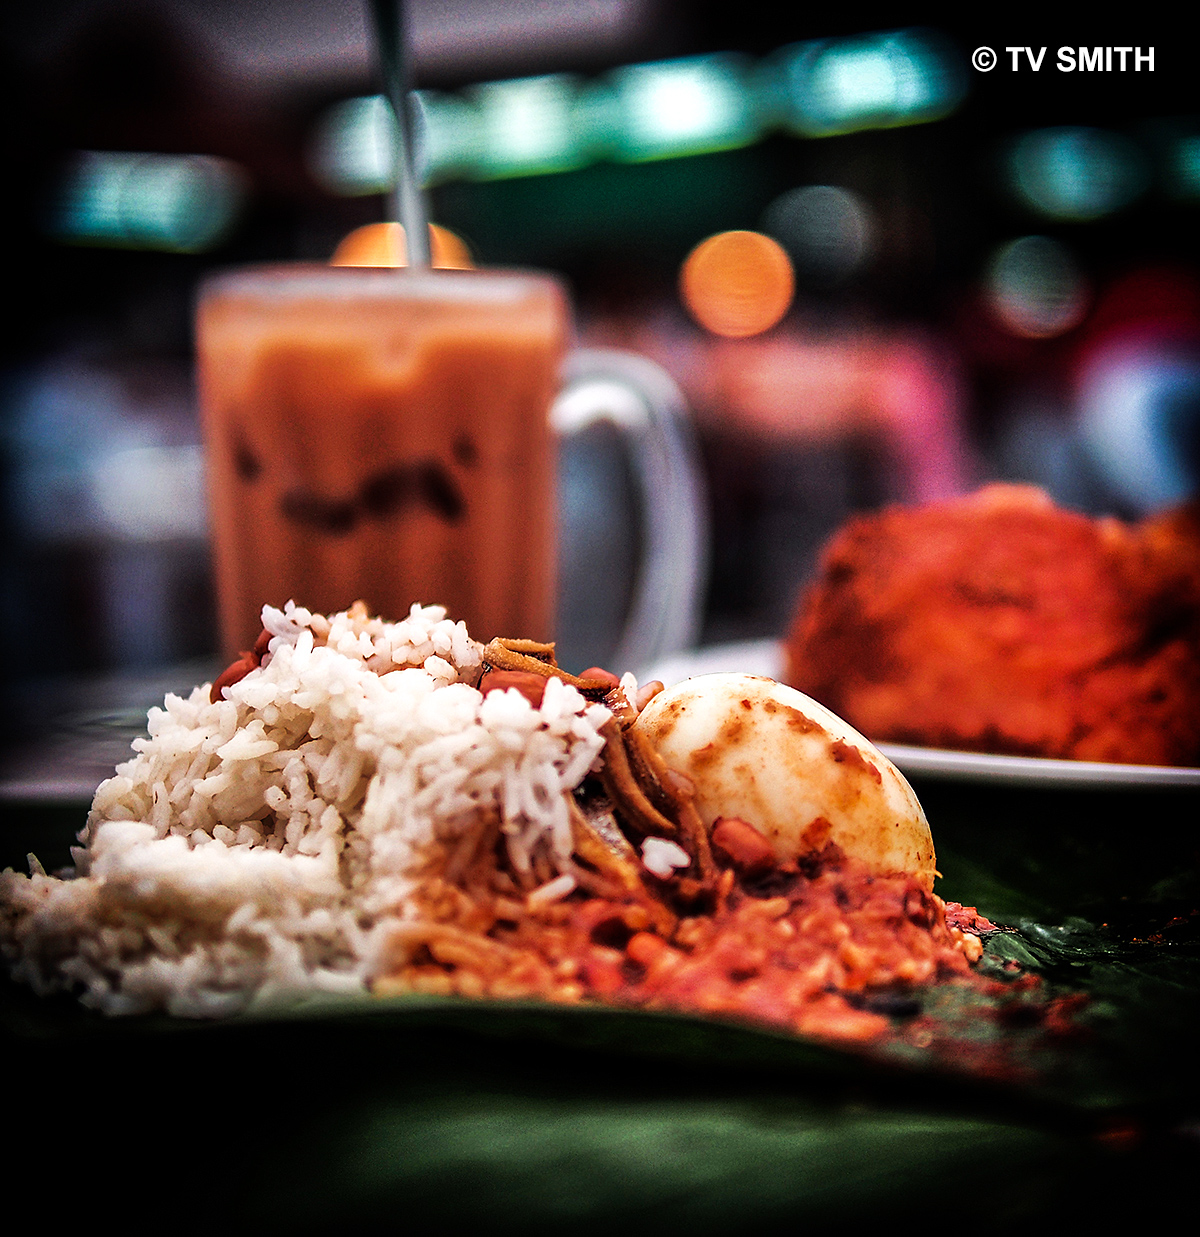 Another View Of Shanmuga's Nasi Lemak